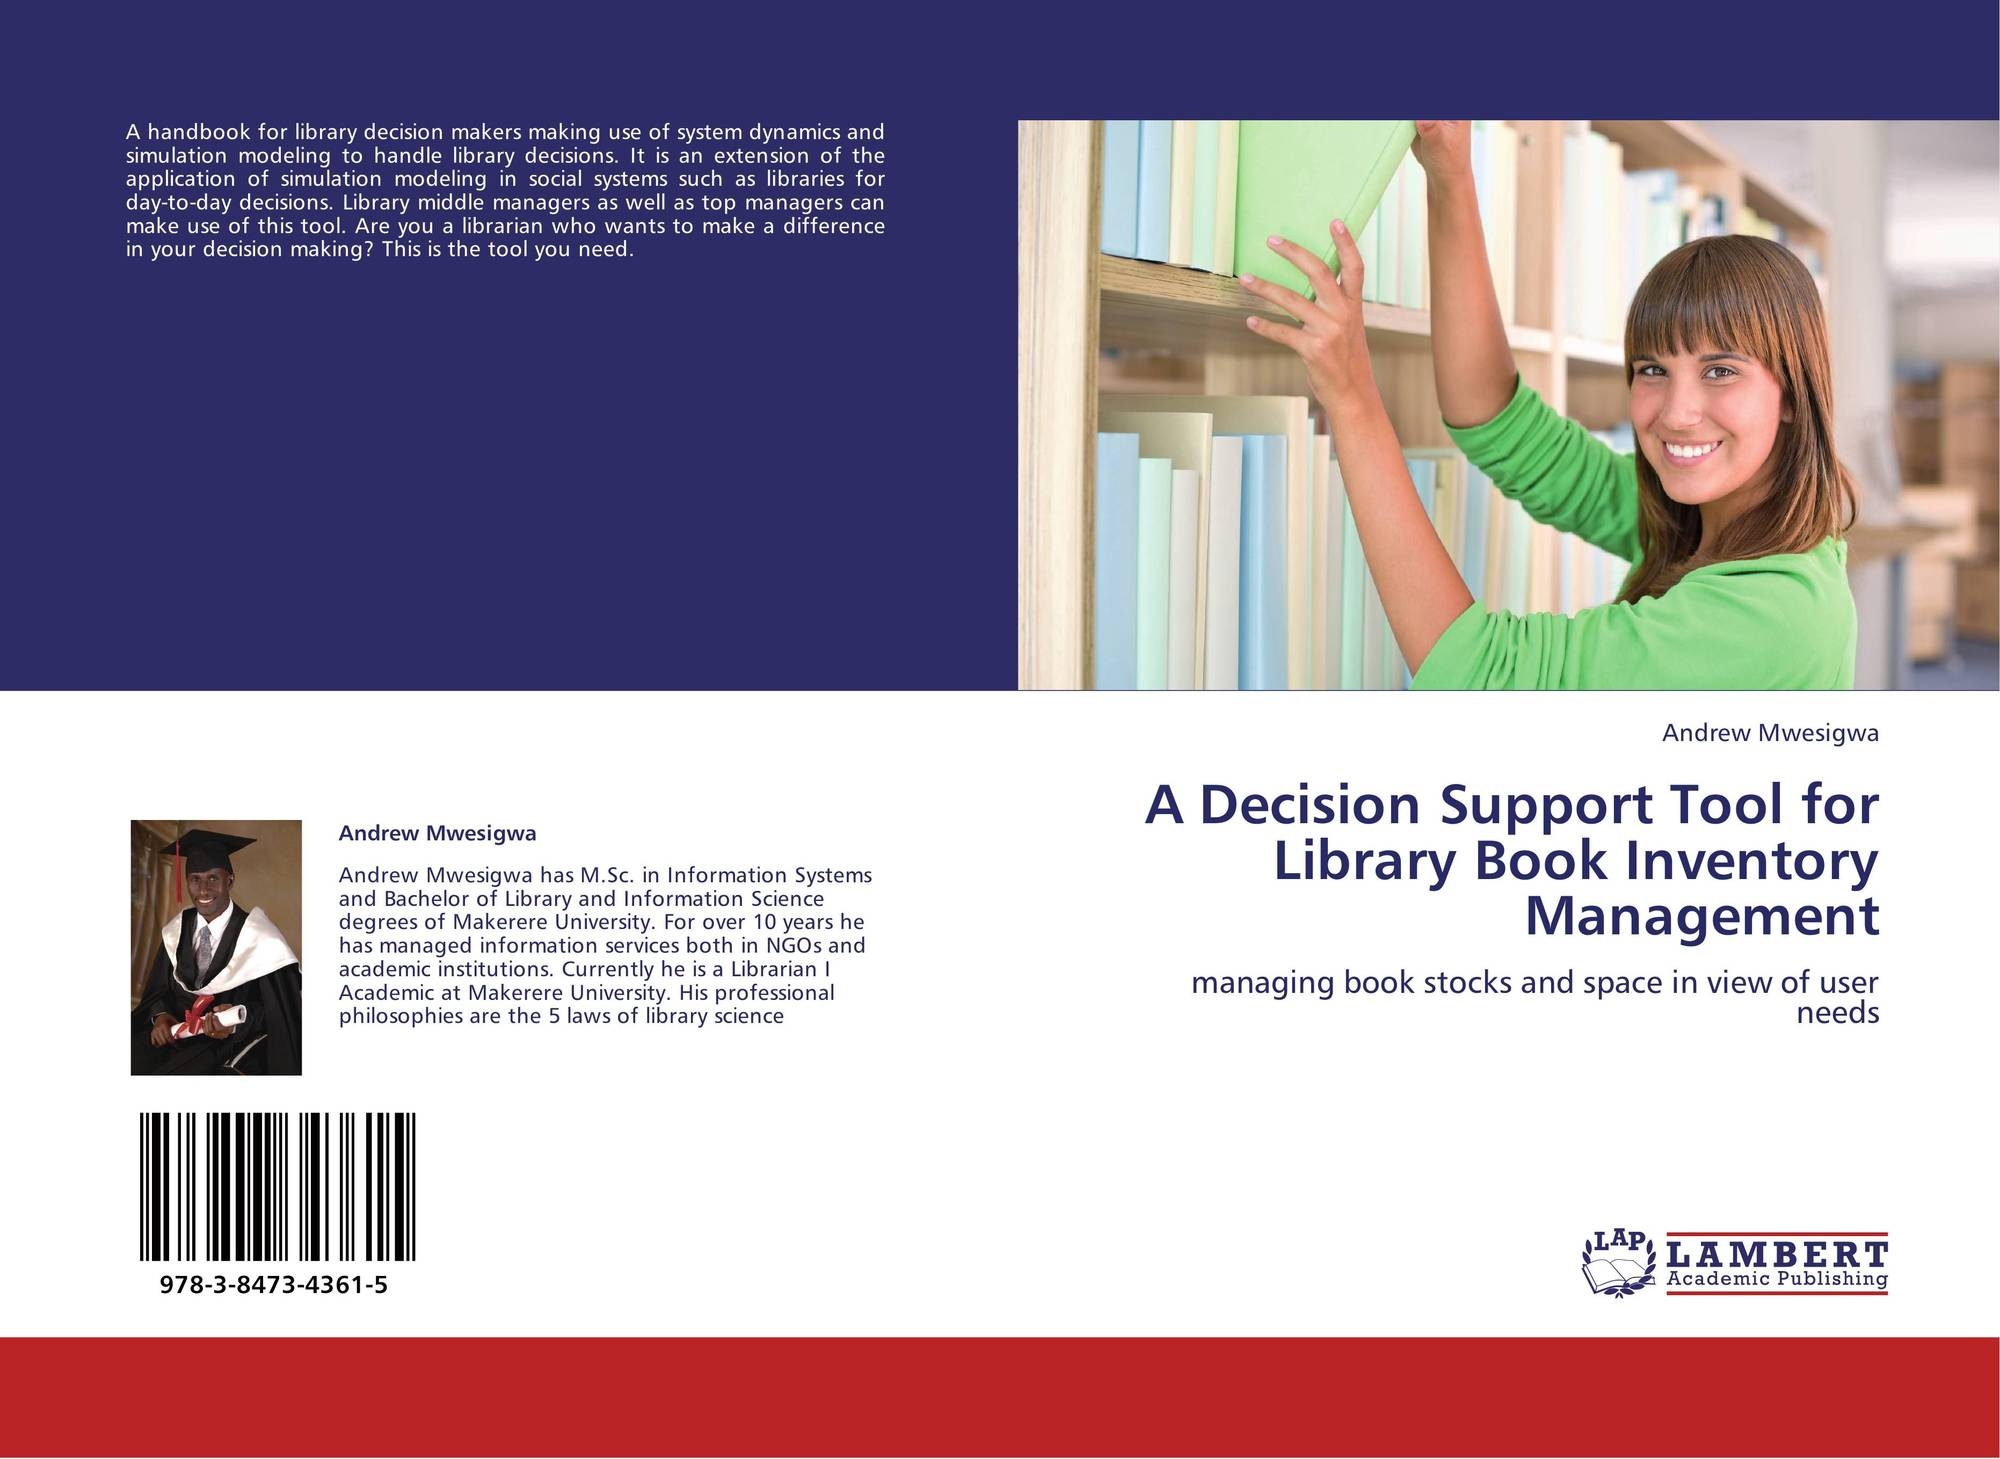 A Decision Support Tool for Library Book Inventory Management, 978-3